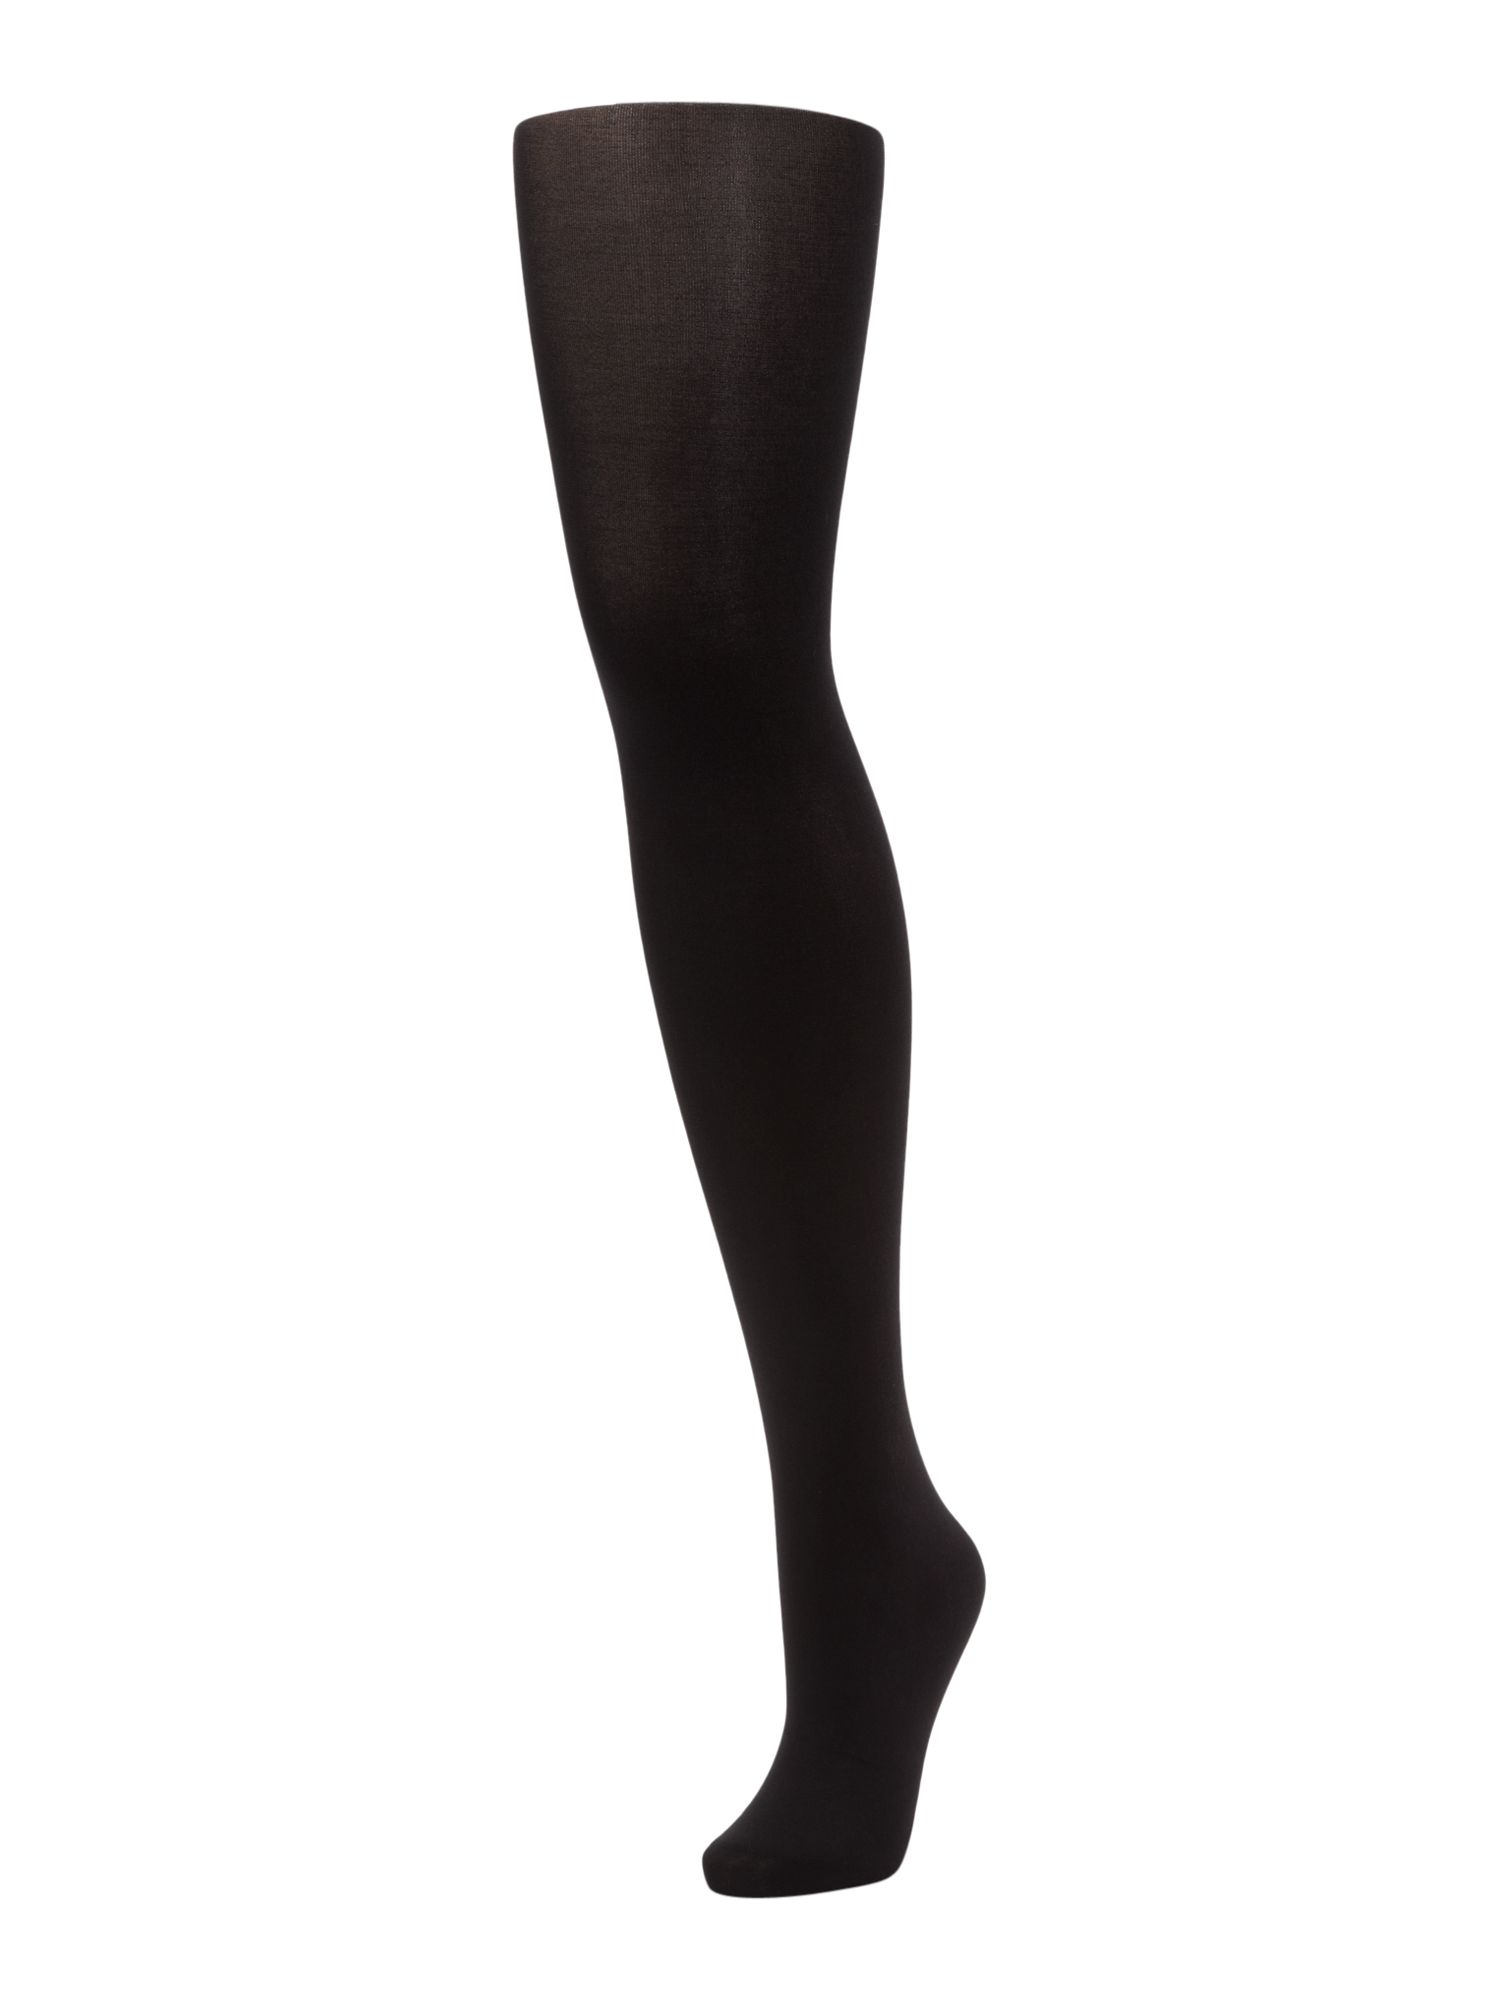 60 Denier opaque tights